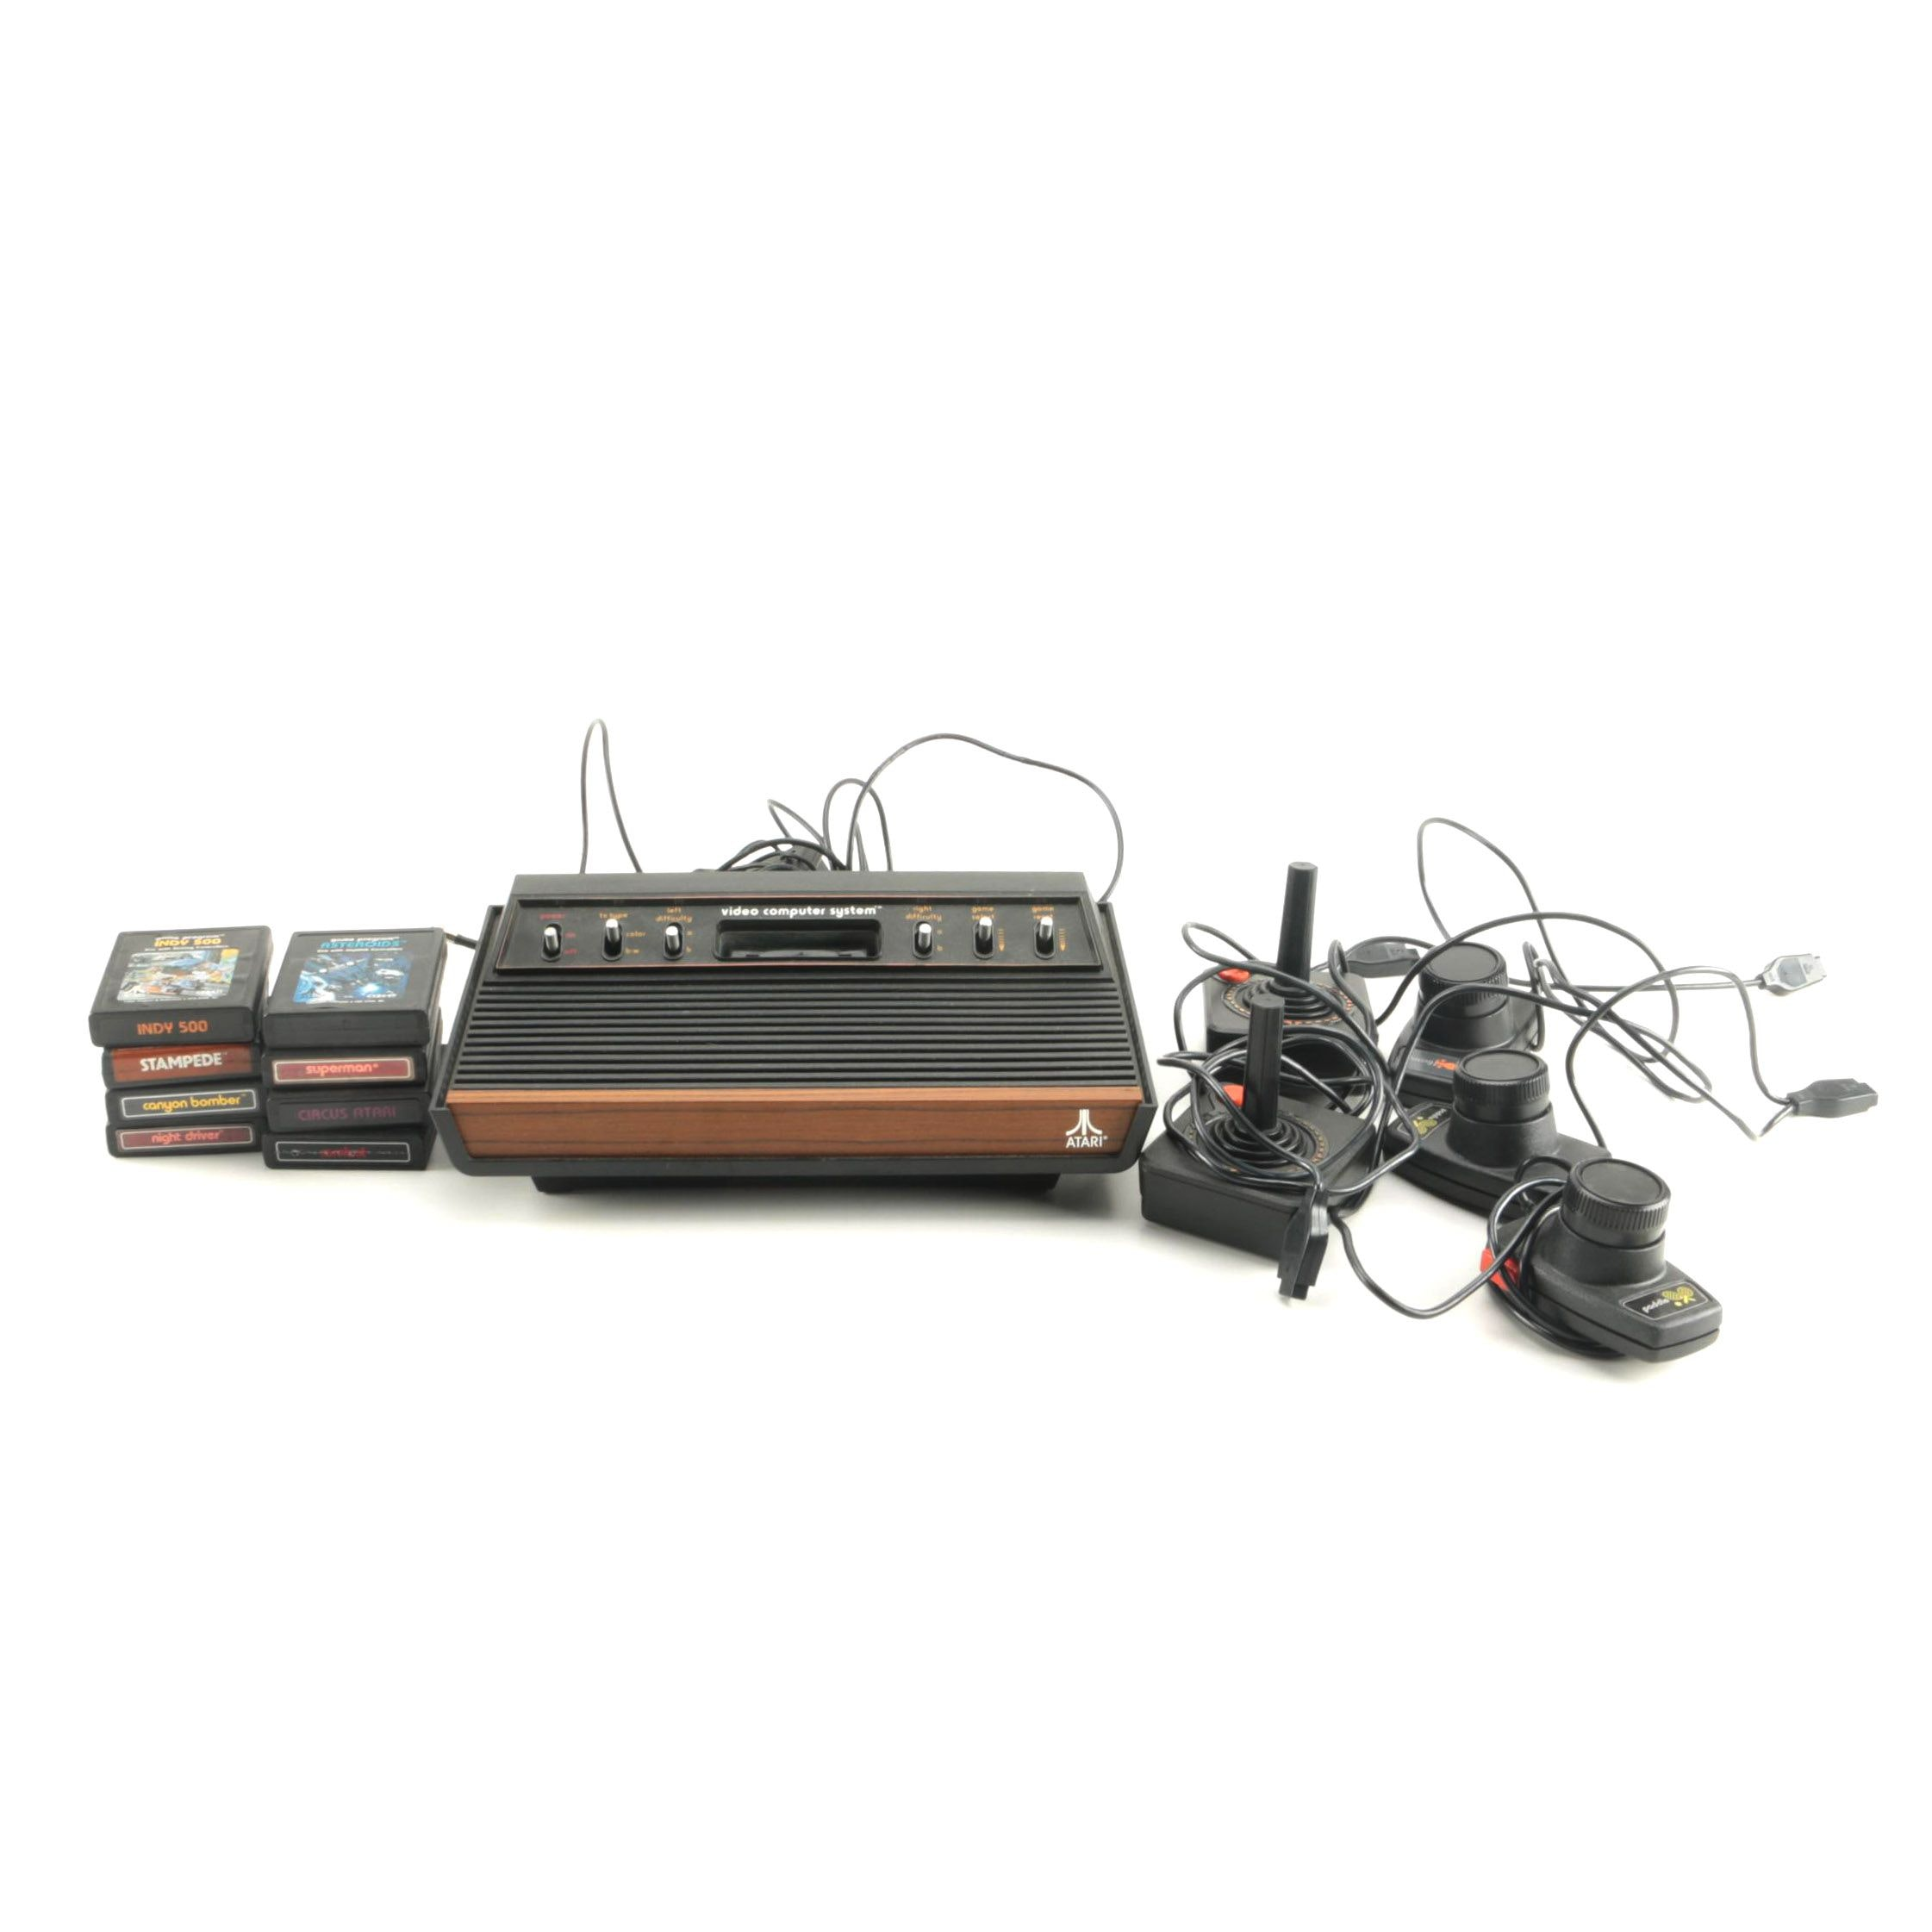 Atari 2600 Console with Games and Accessories